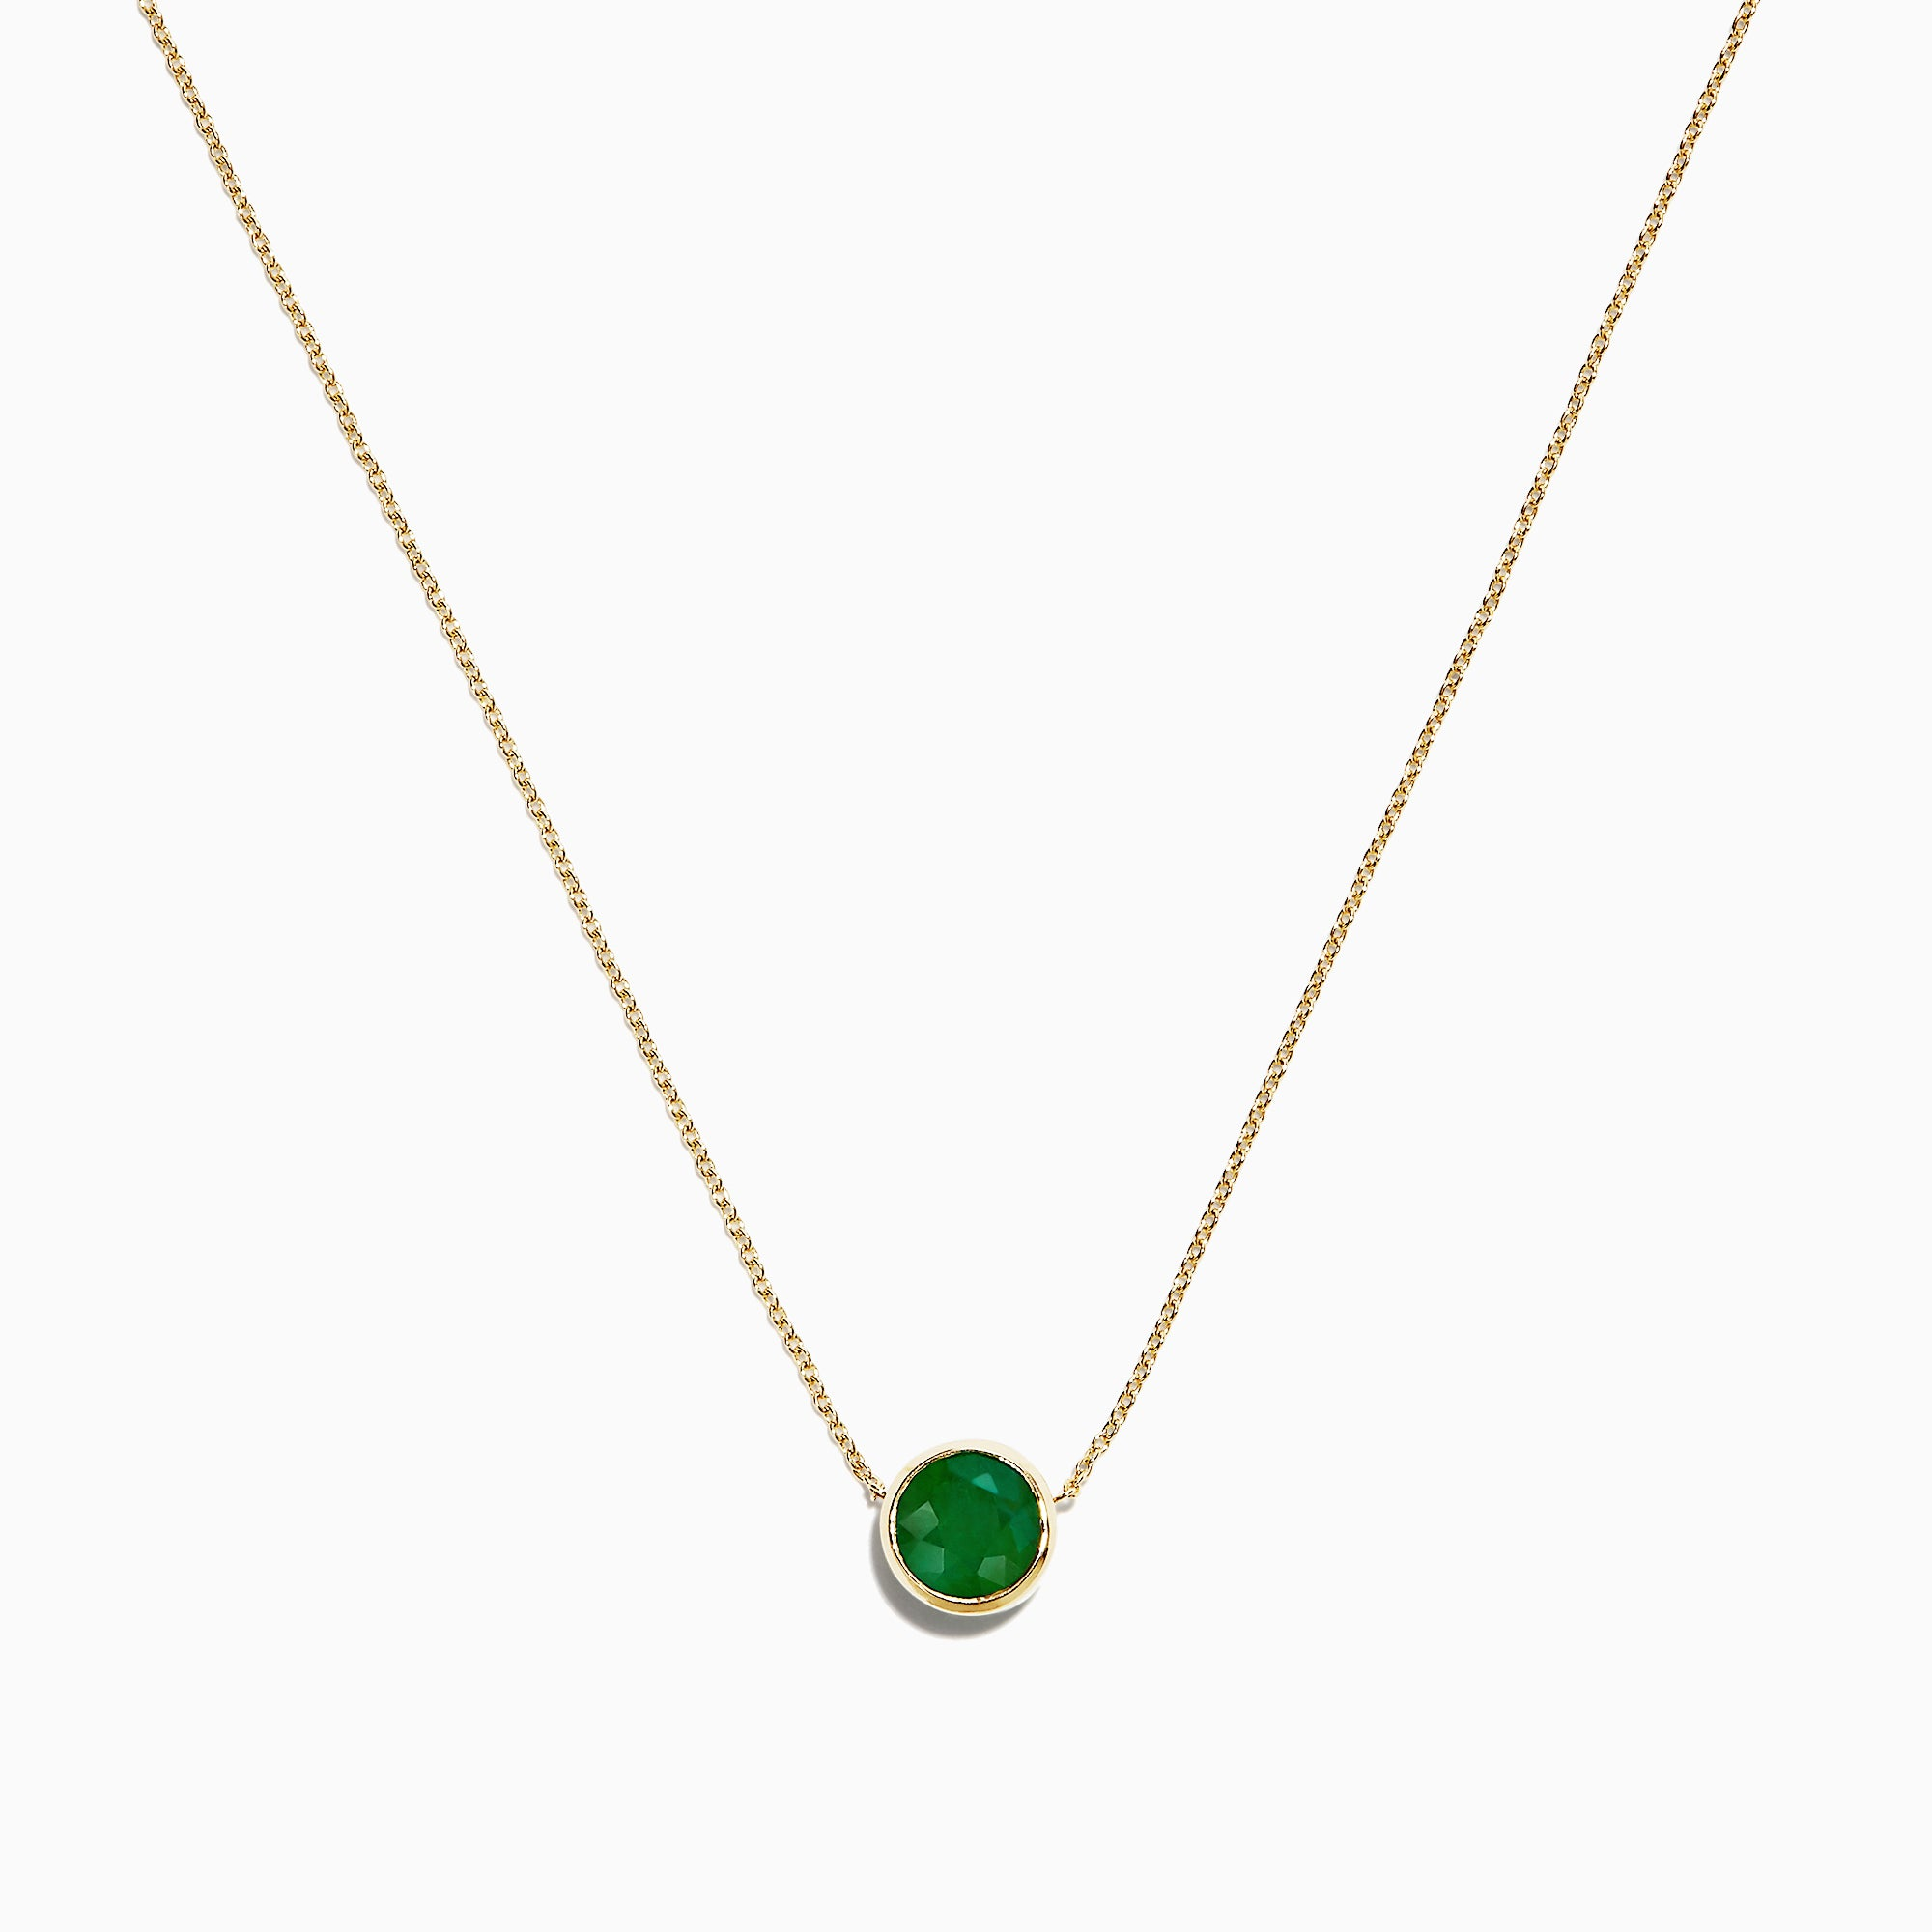 Effy 14K Yellow Gold Emerald Necklace, 0.81 TCW